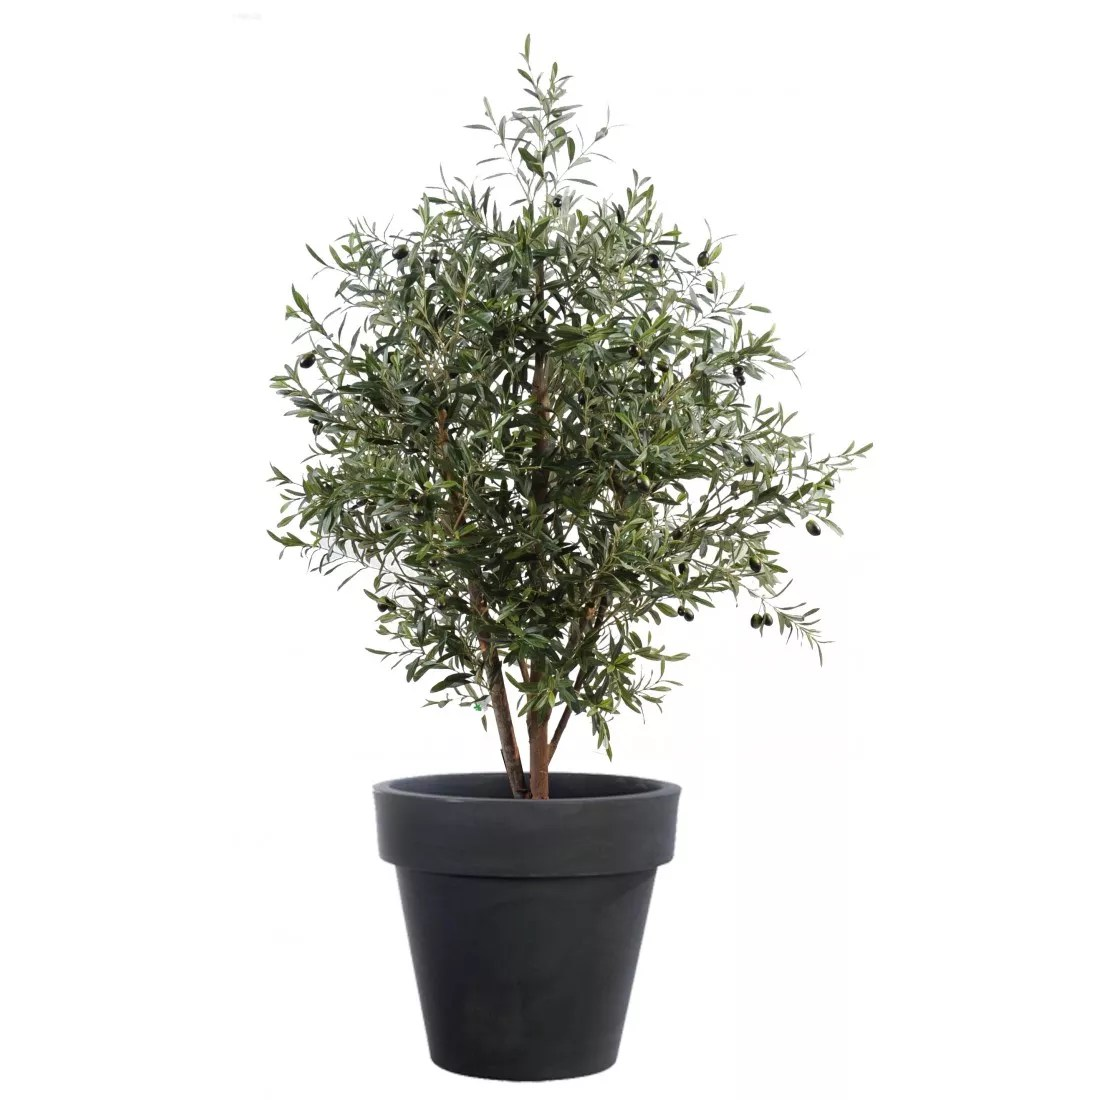 Livre Factice Decoration Olivier Artificiel New Buisson 140 Et 170 Cm : Oliviers